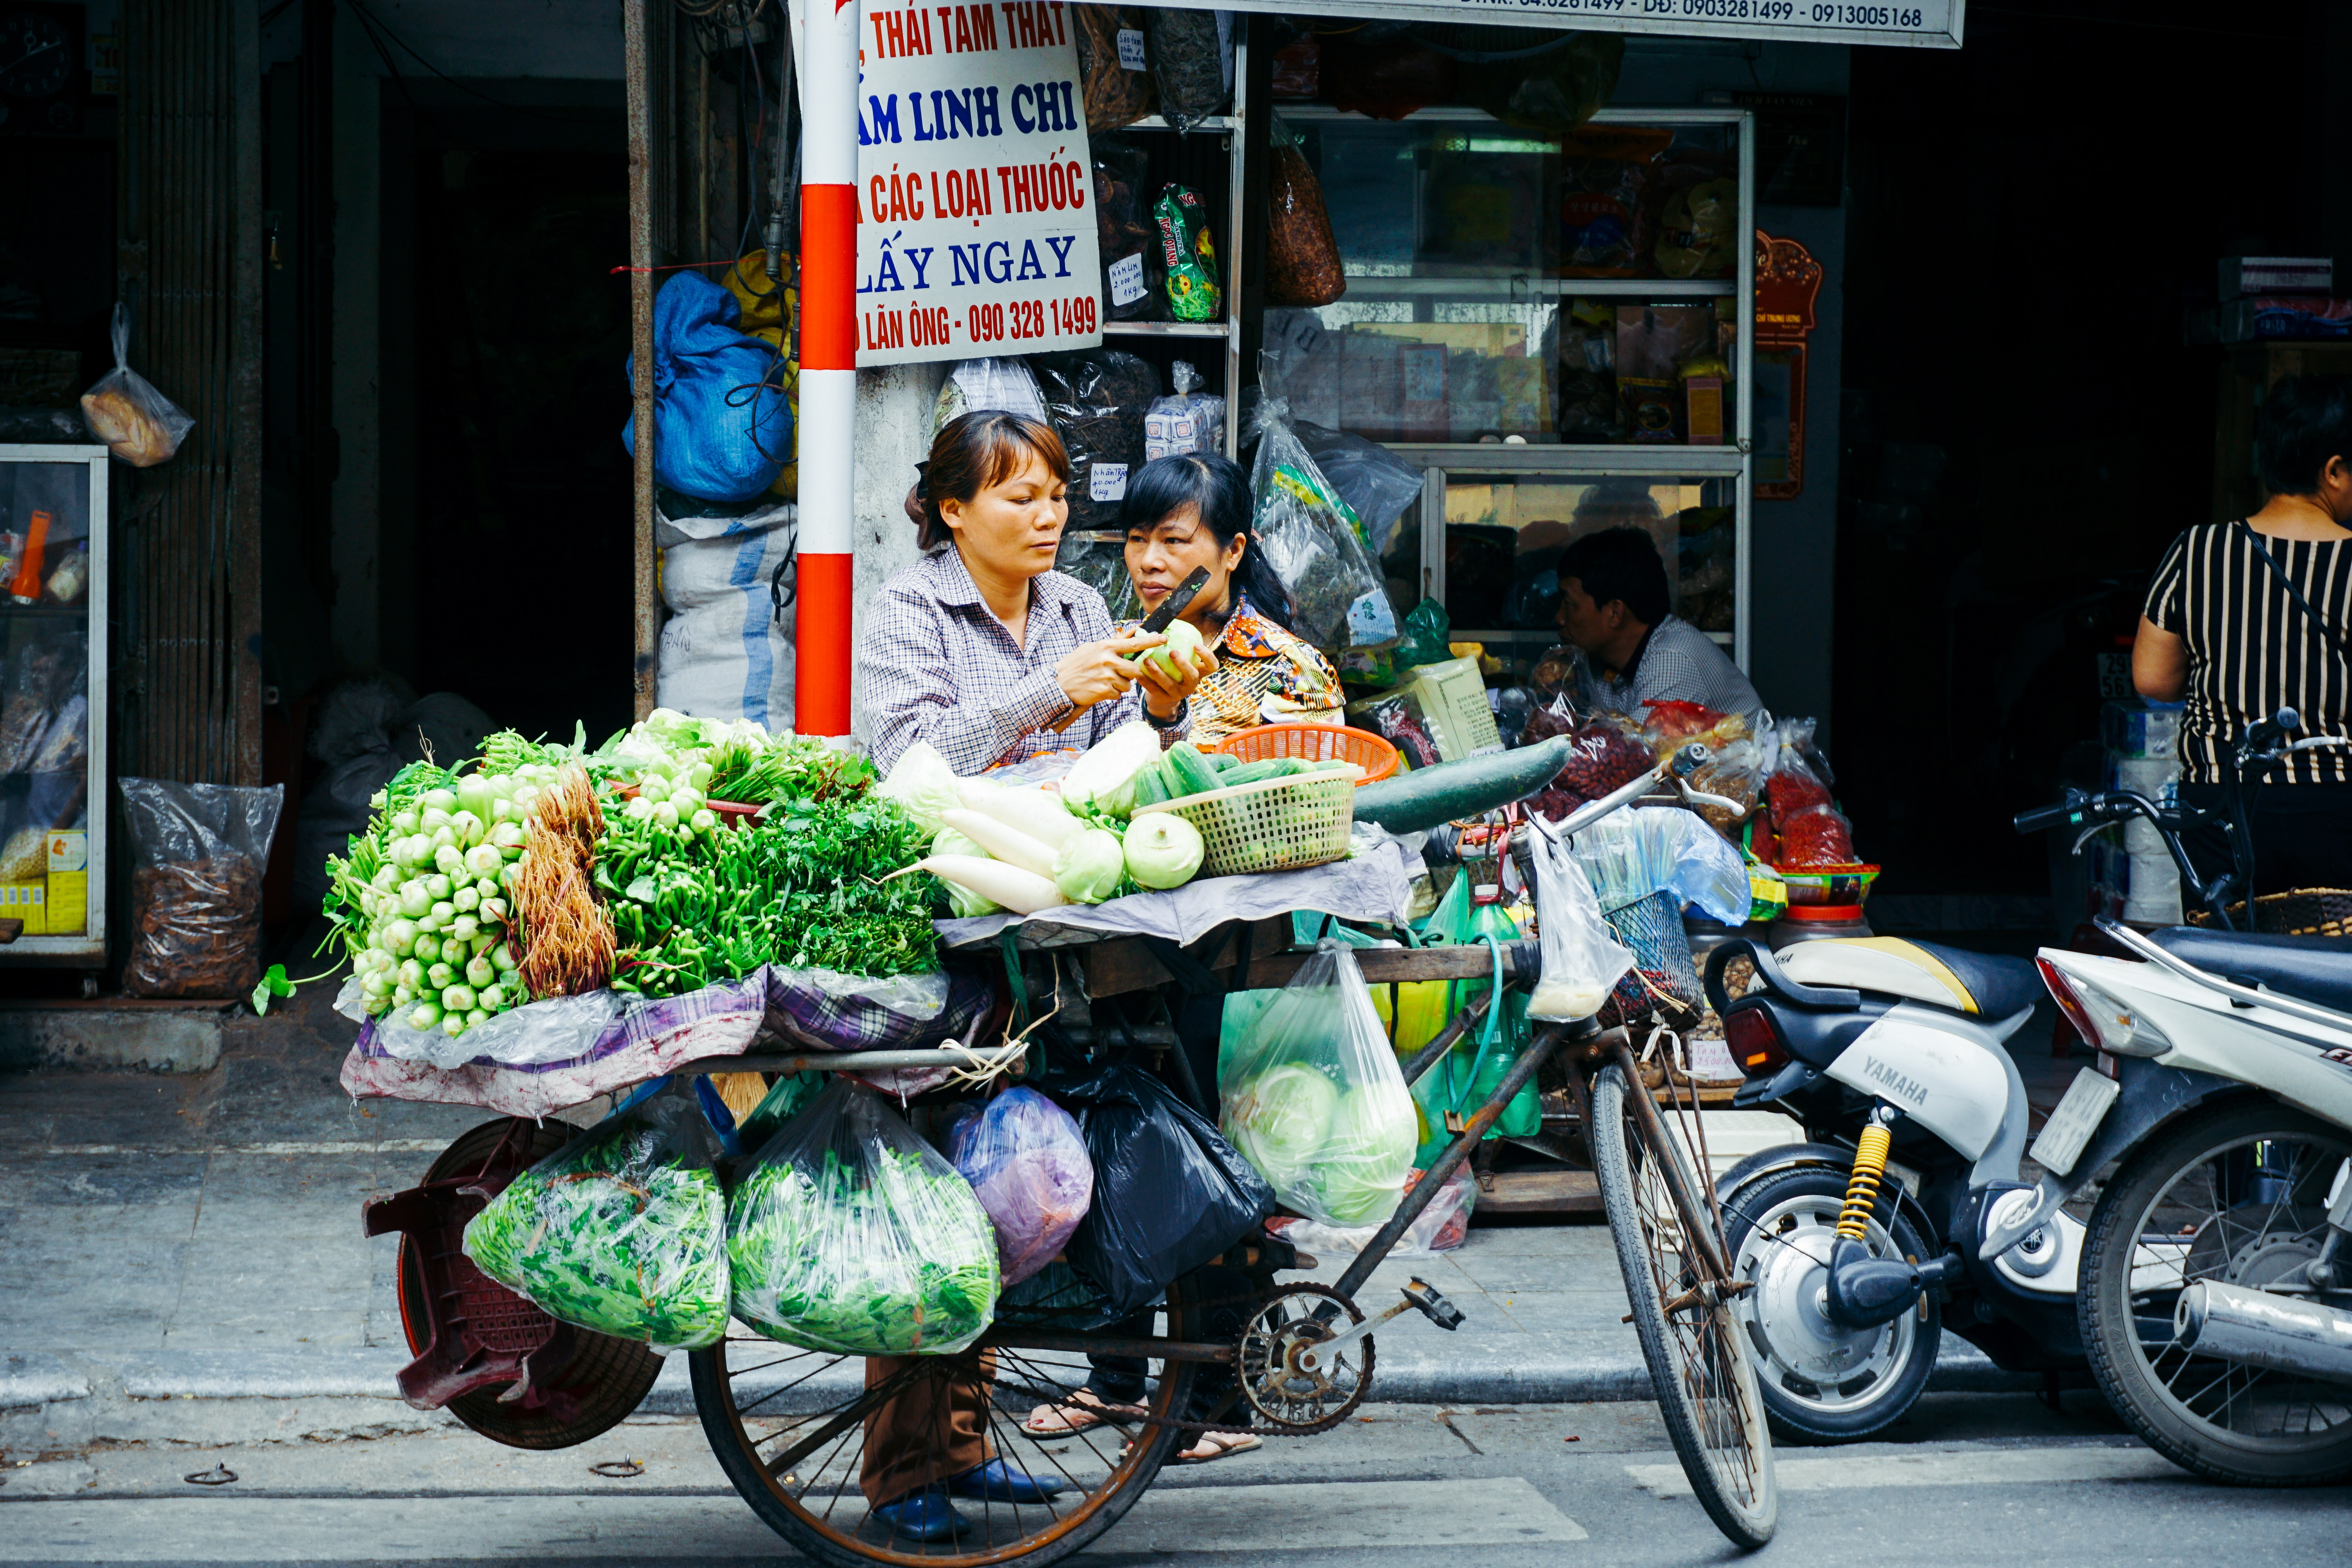 Two women near an old bicycle heavily loaded with various green vegetables